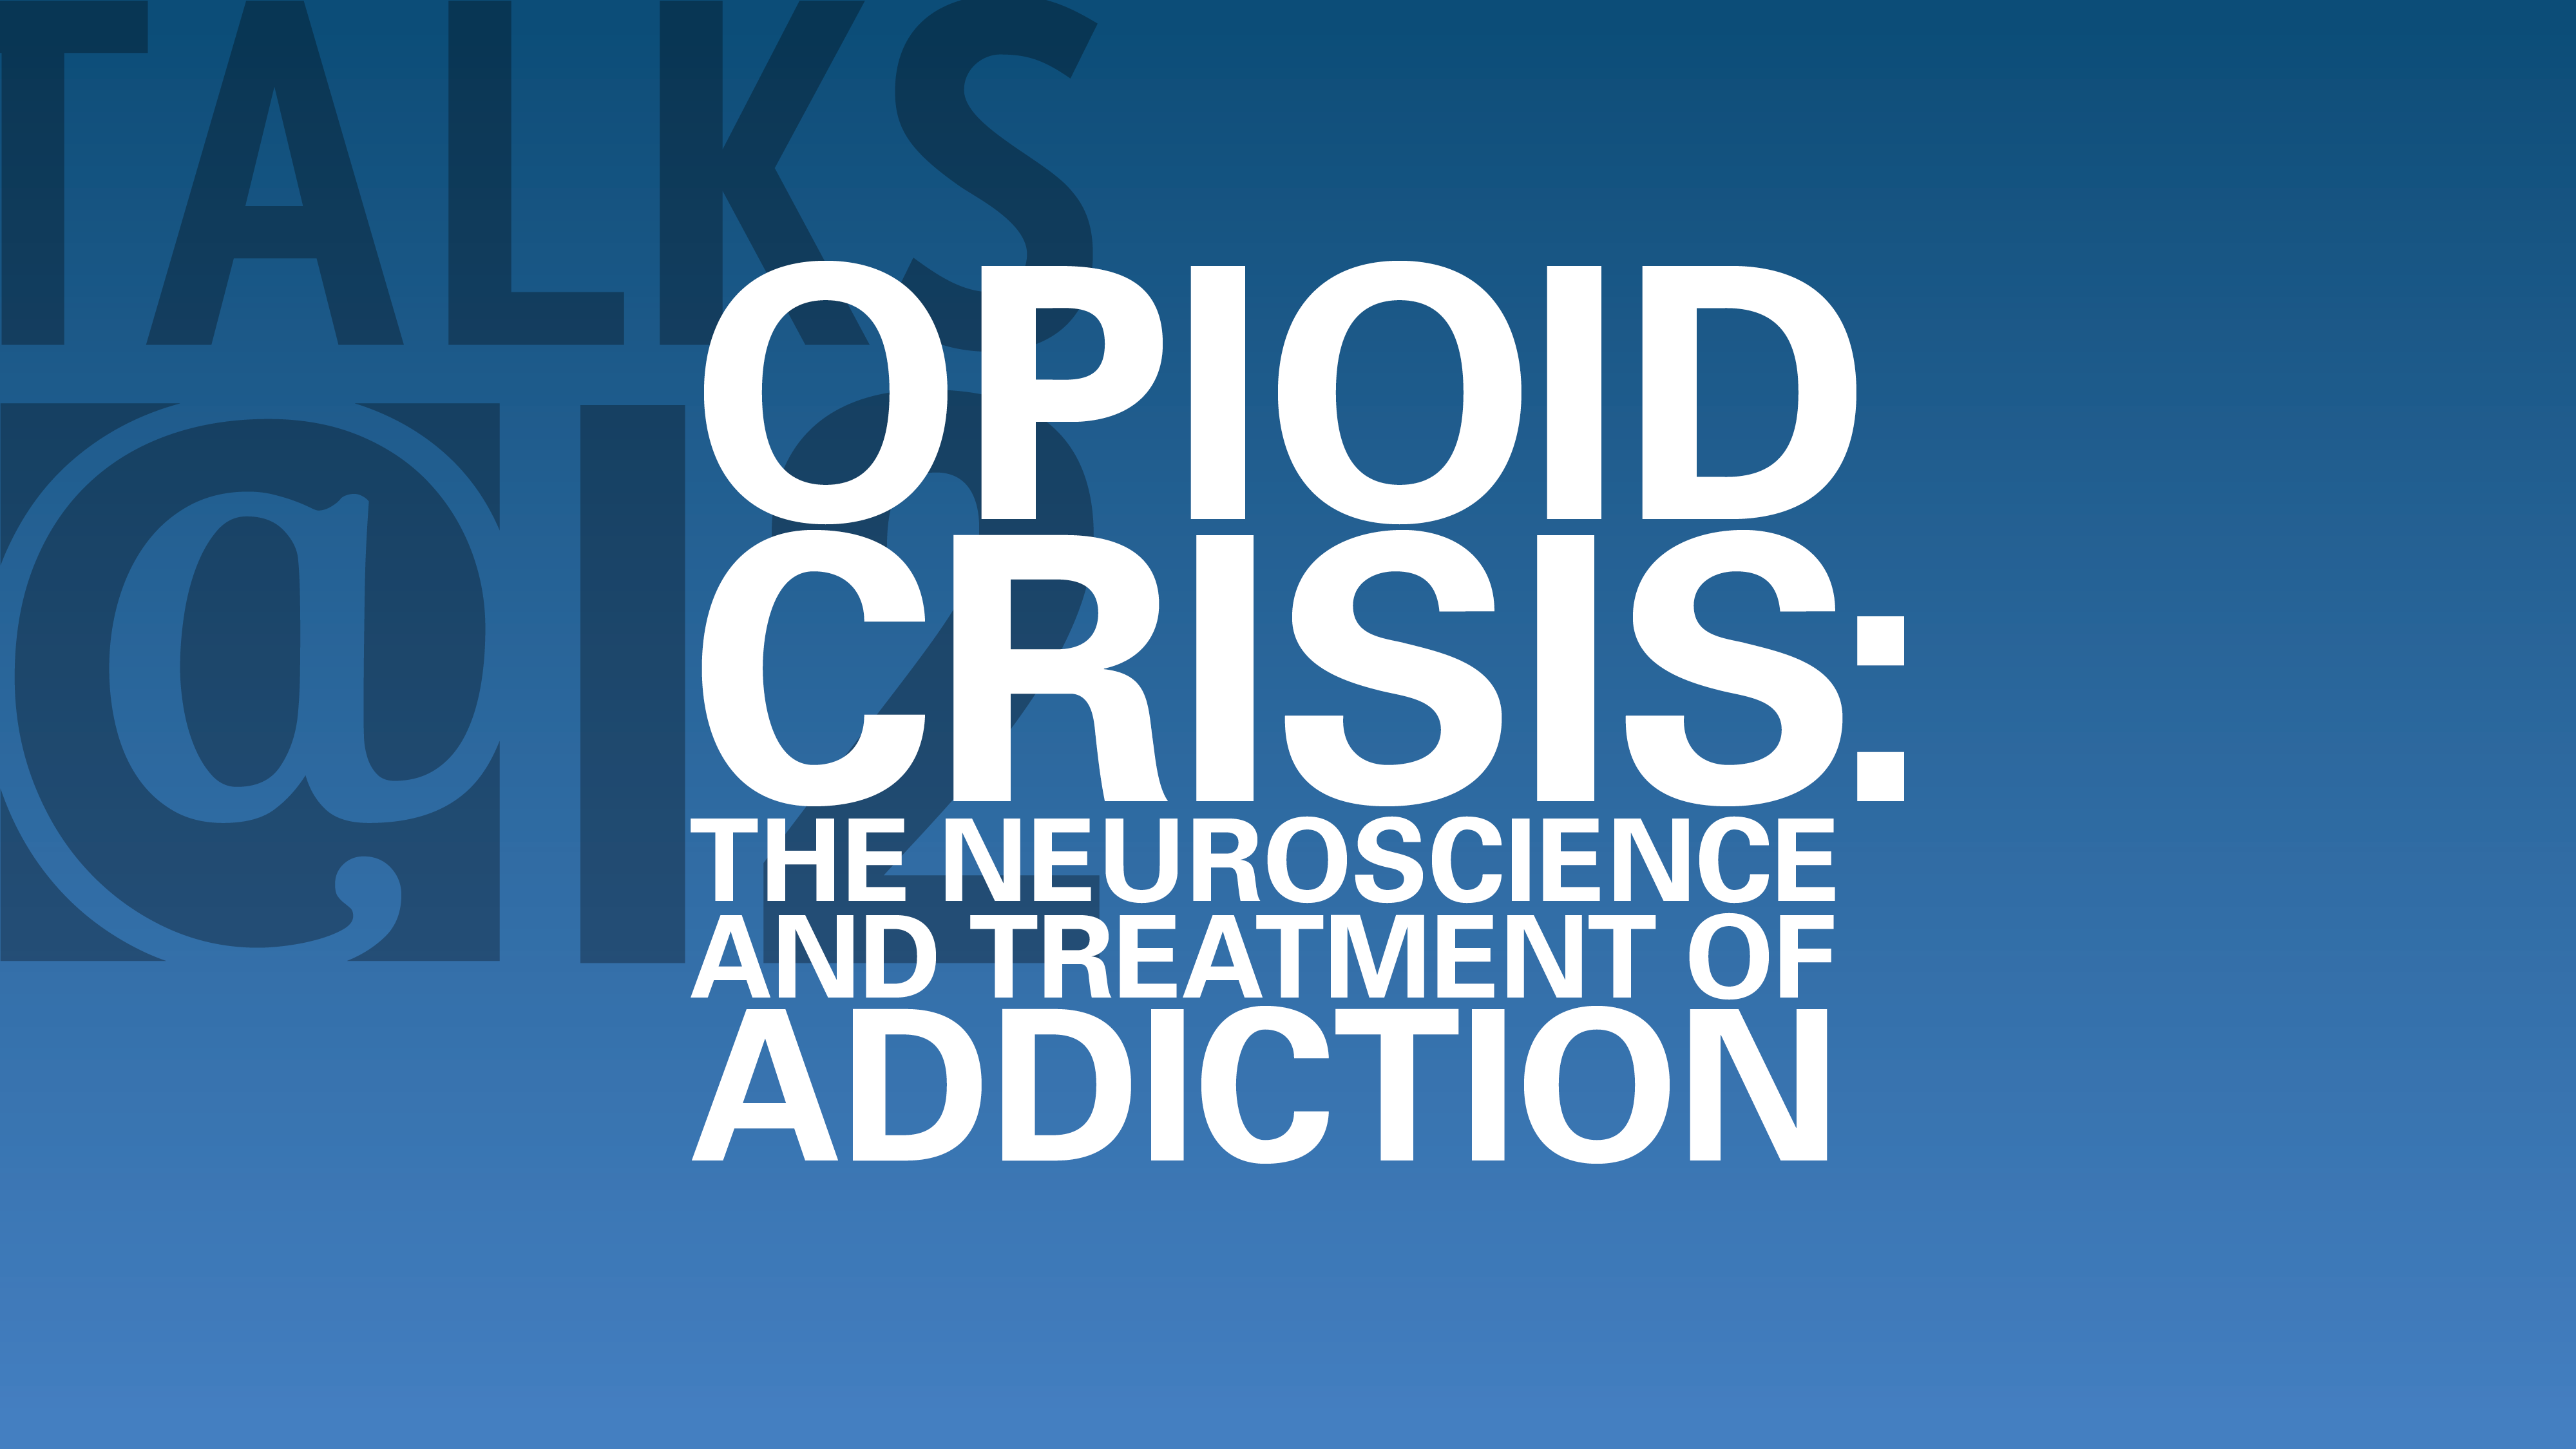 Opioid Crisis: The neuroscience and treatment of addiction